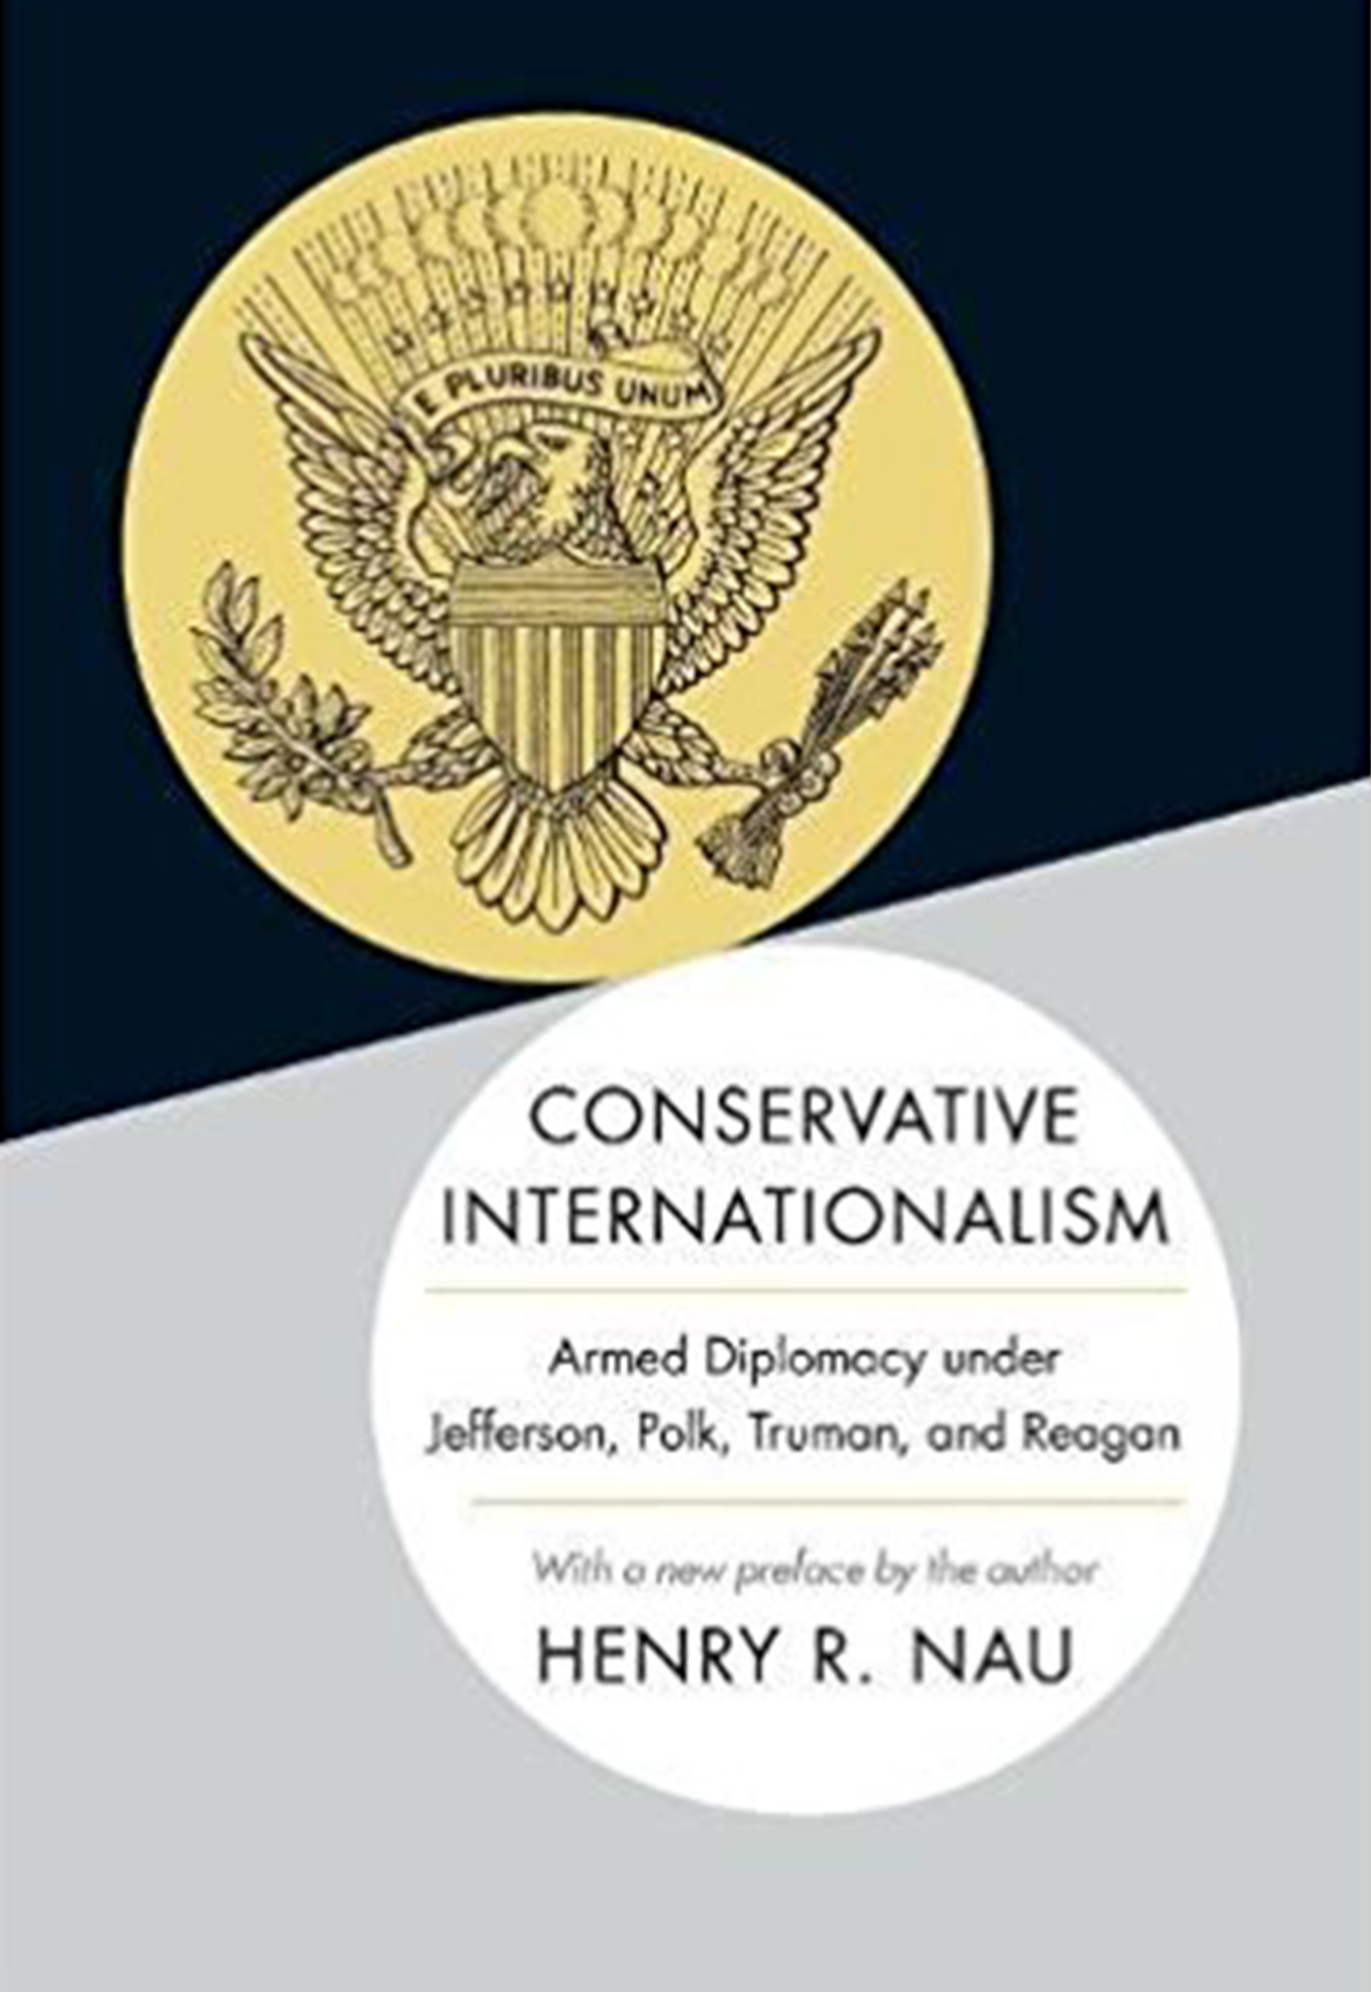 book cover: text, Conservative Internationalism, Armed Diplomacy under Jefferson, Polk, Truman, and Reagan. With a new preface by the author Henry R. Nau. The United States Seal.